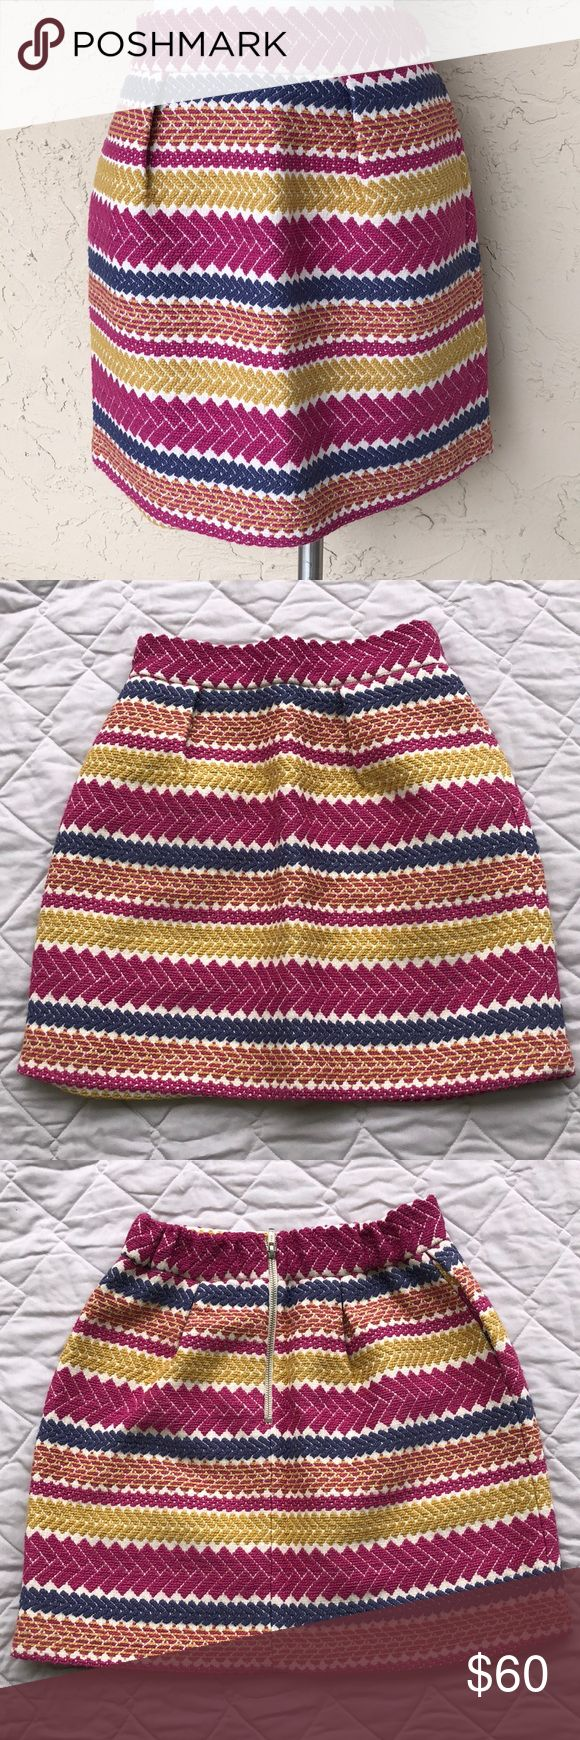 """Gorgeous skirt nomad Morgan Carper Anthropologie Jacquard skirt ... size medium  Excellent condition from smoke-free home. Stripe design in magenta, golden yellow and deep lavender. Fully lined. Zipper at the back. Made in the USA  100% cotton (polyester lining) Measures approximately 14"""" across waistband Anthropologie Skirts"""